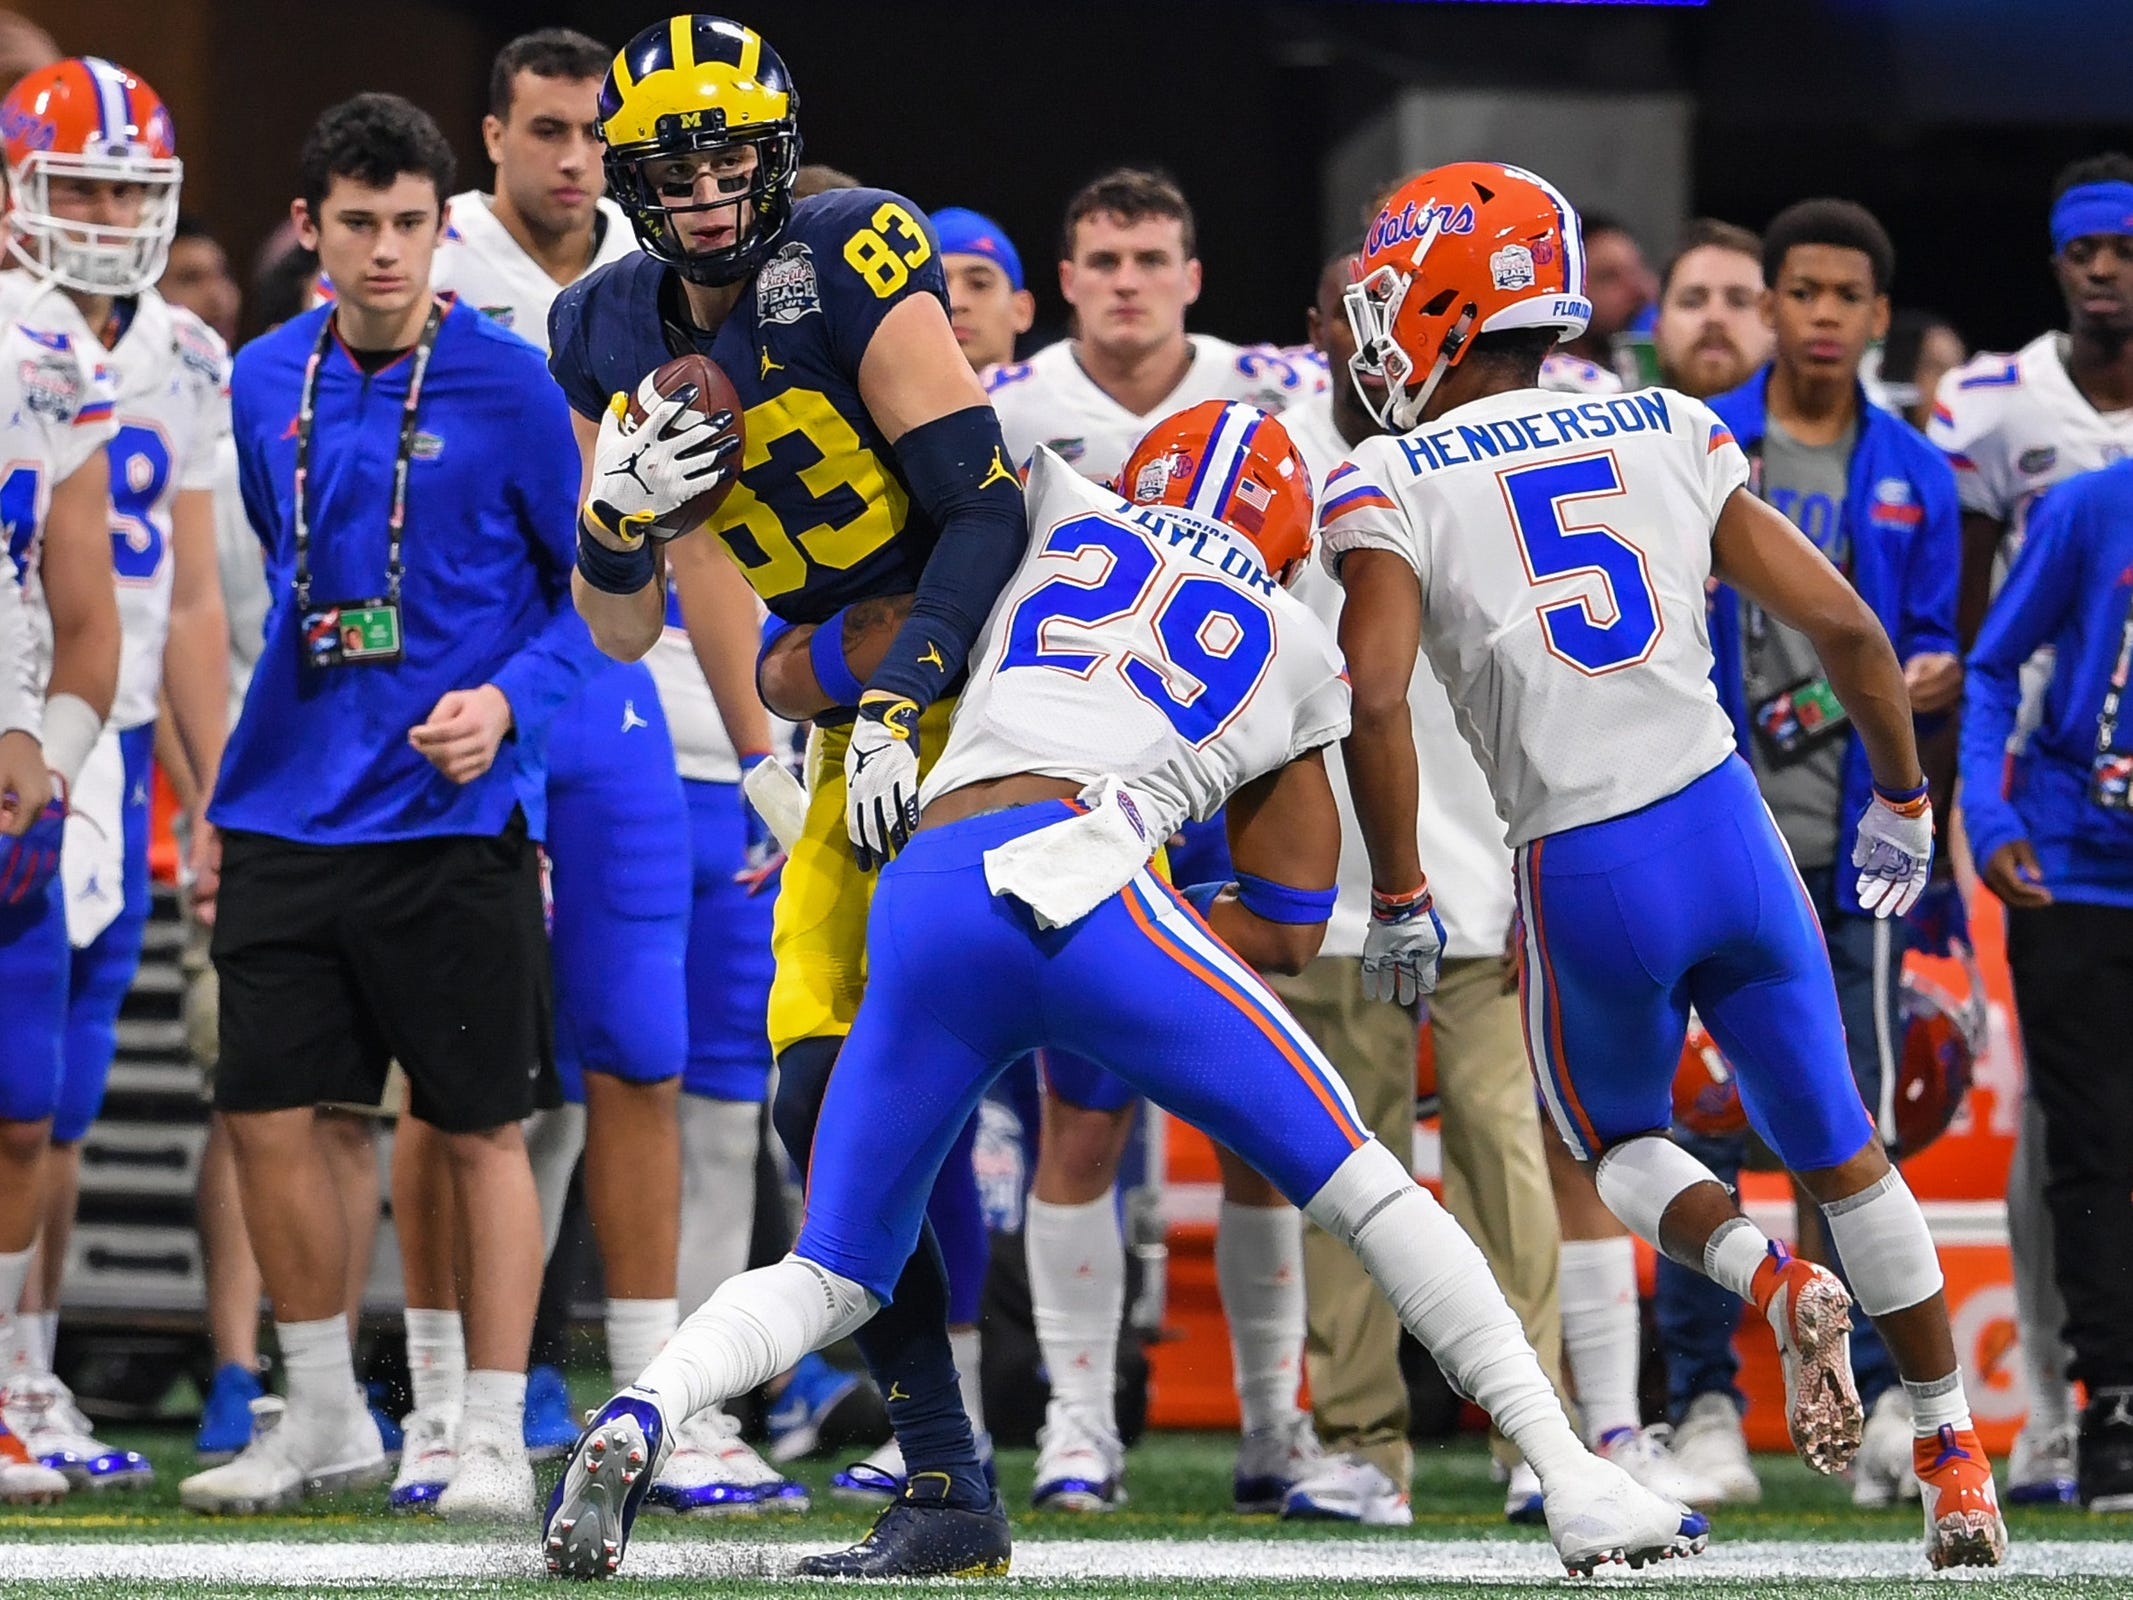 Michigan tight end Zach Gentry runs against Florida defensive back Jeawon Taylor in the first quarter of the Peach Bowl on Saturday, Dec. 29, 2018, in Atlanta.